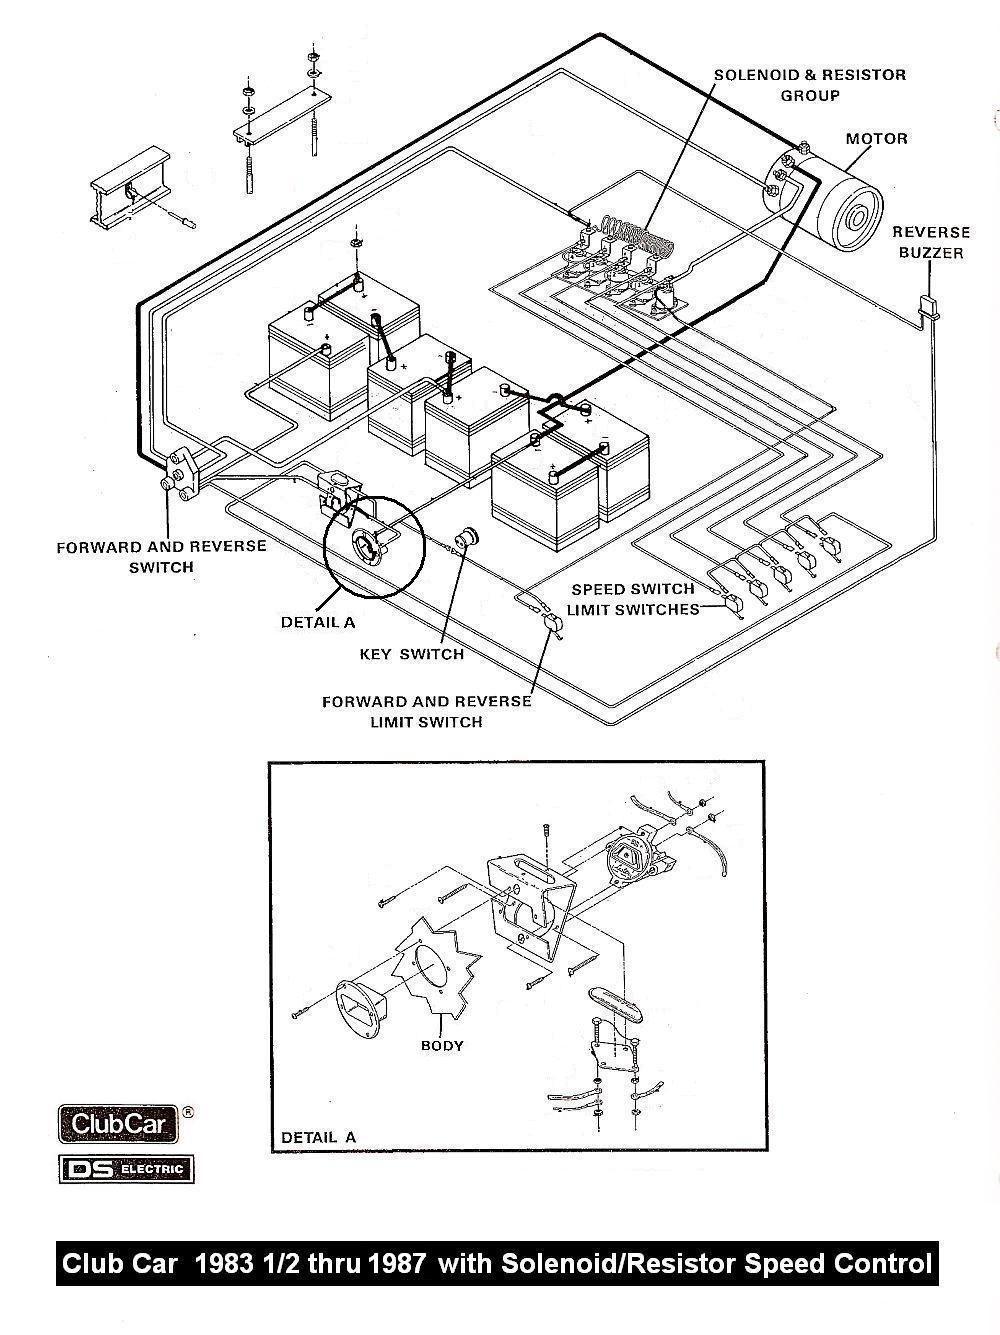 0e8d045370be7682b159825224221faa vintagegolfcartparts com *freezer & crock pot* pinterest gas club car golf cart wiring diagram at webbmarketing.co